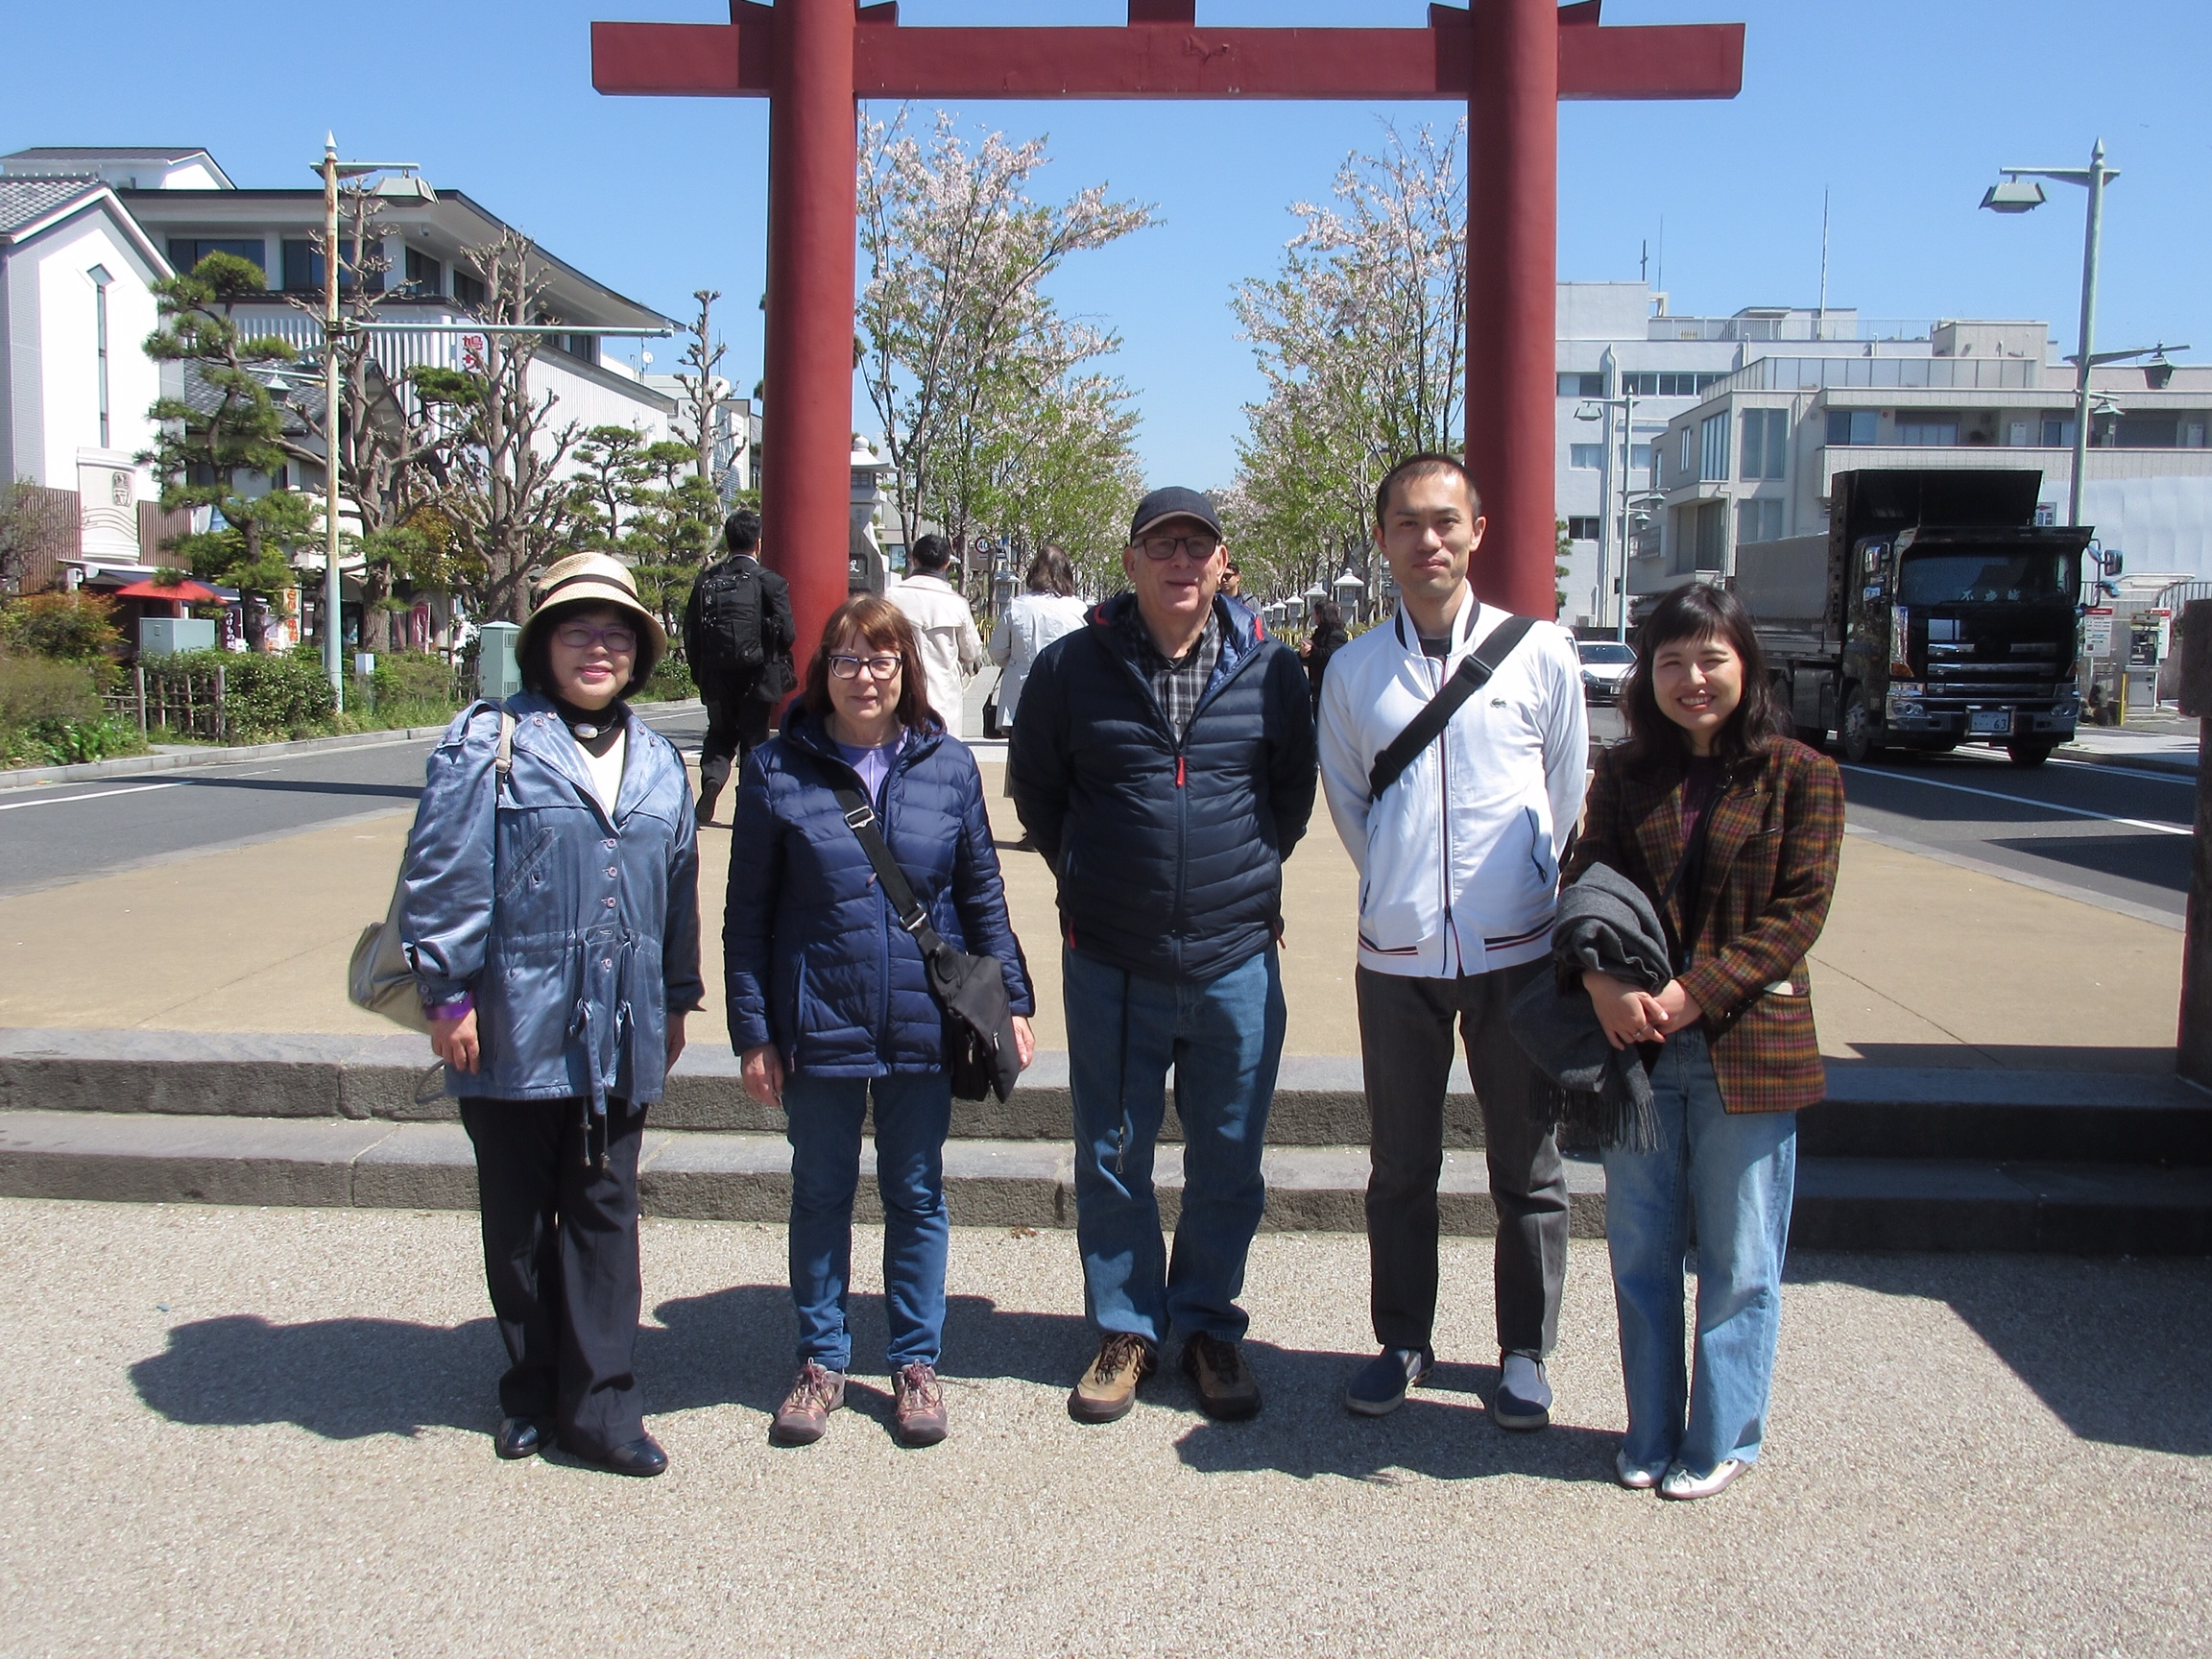 IPA UK's John Penlington enjoys good fellowship in Japan